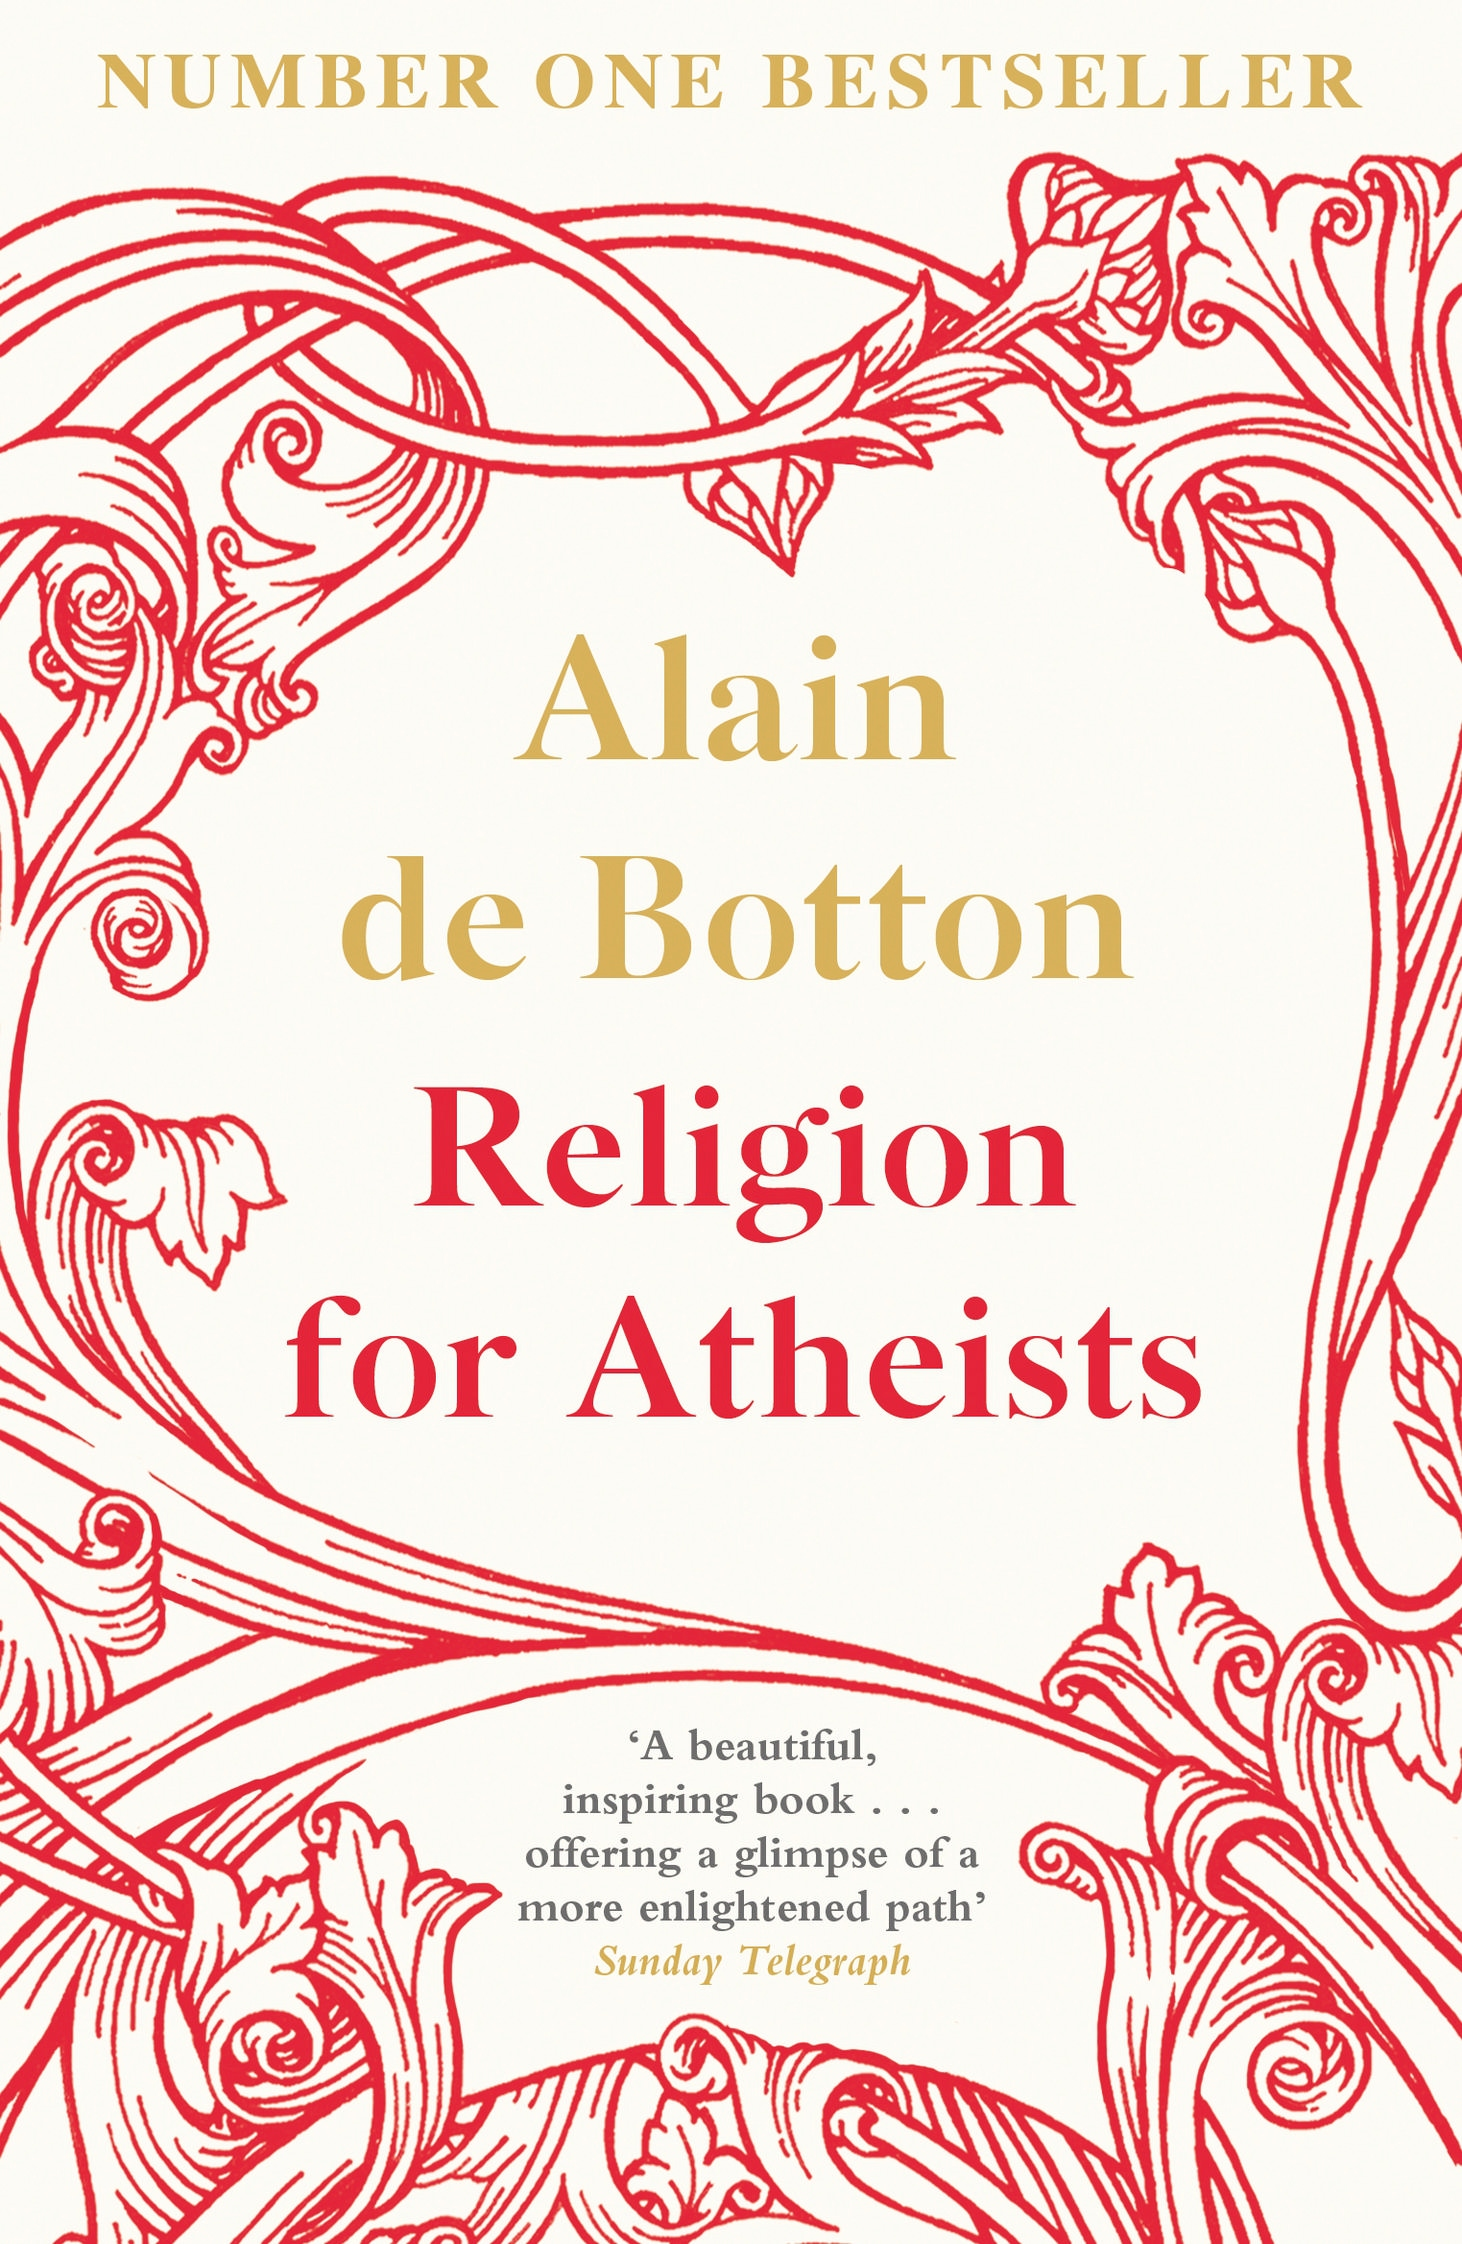 Click here to buy Alain de Botton's Religion for Atheists